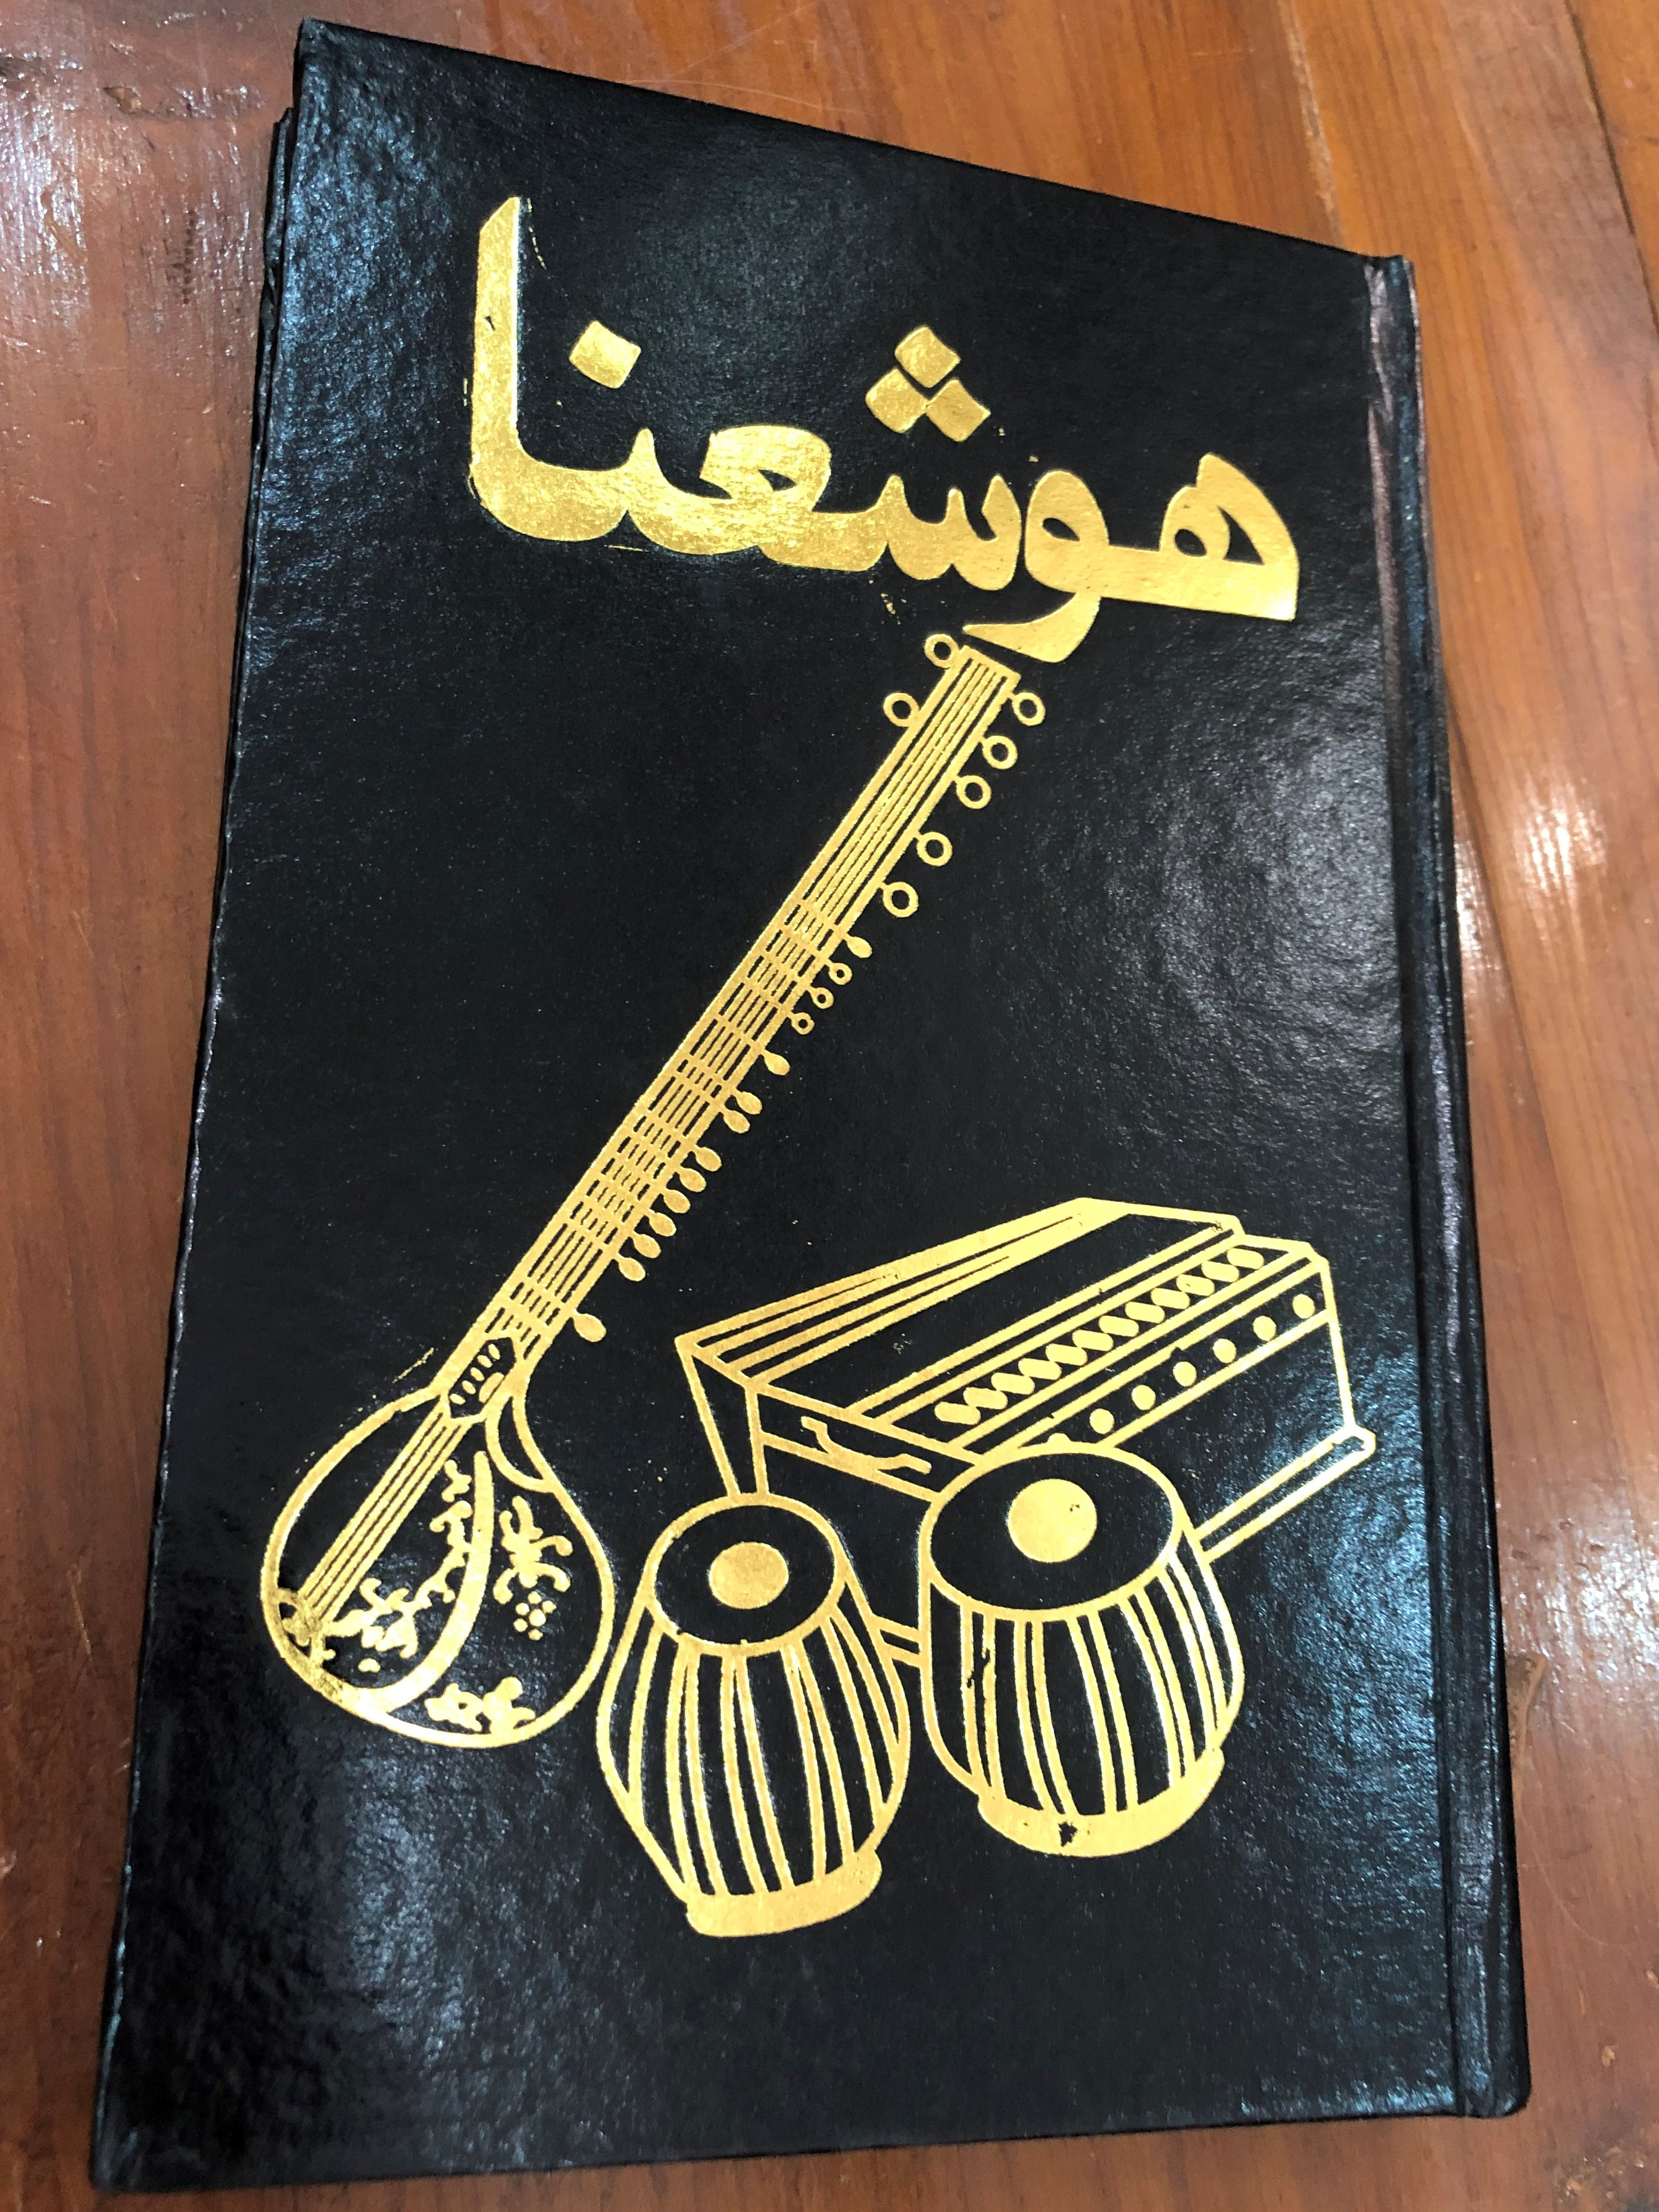 urdu-christian-song-book-for-praise-and-worship-urdu-language-psalter-hardcover-2016-1-.jpg